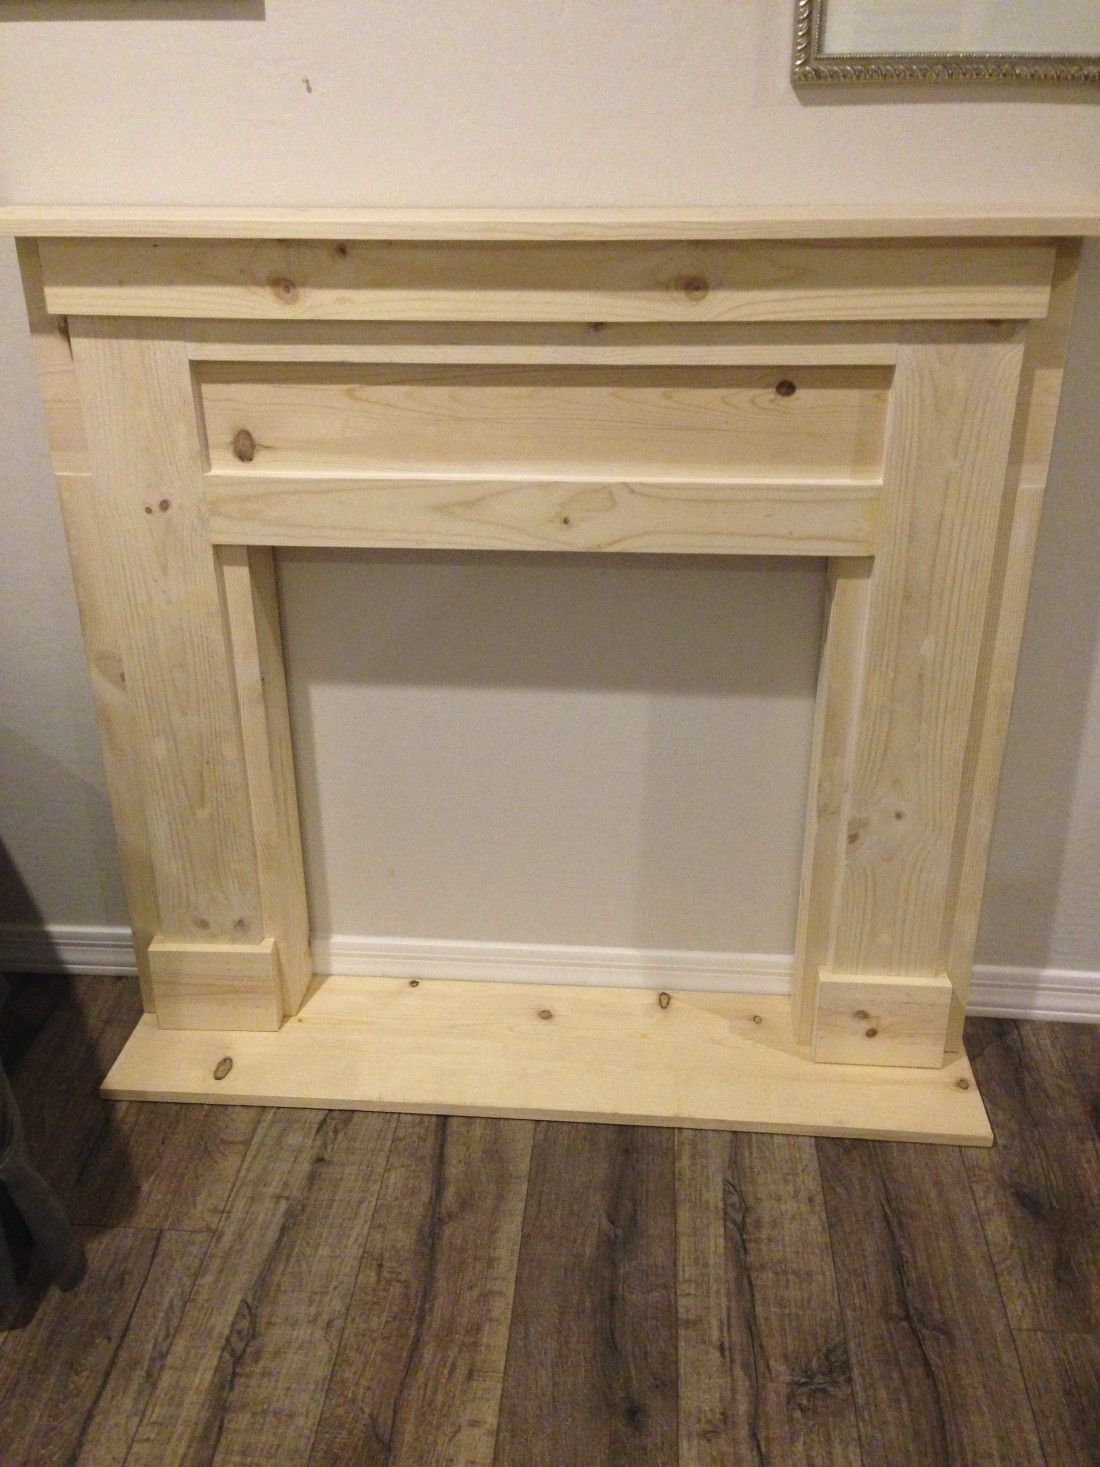 Diy faux fireplace u mantel faux fireplace pine and easy